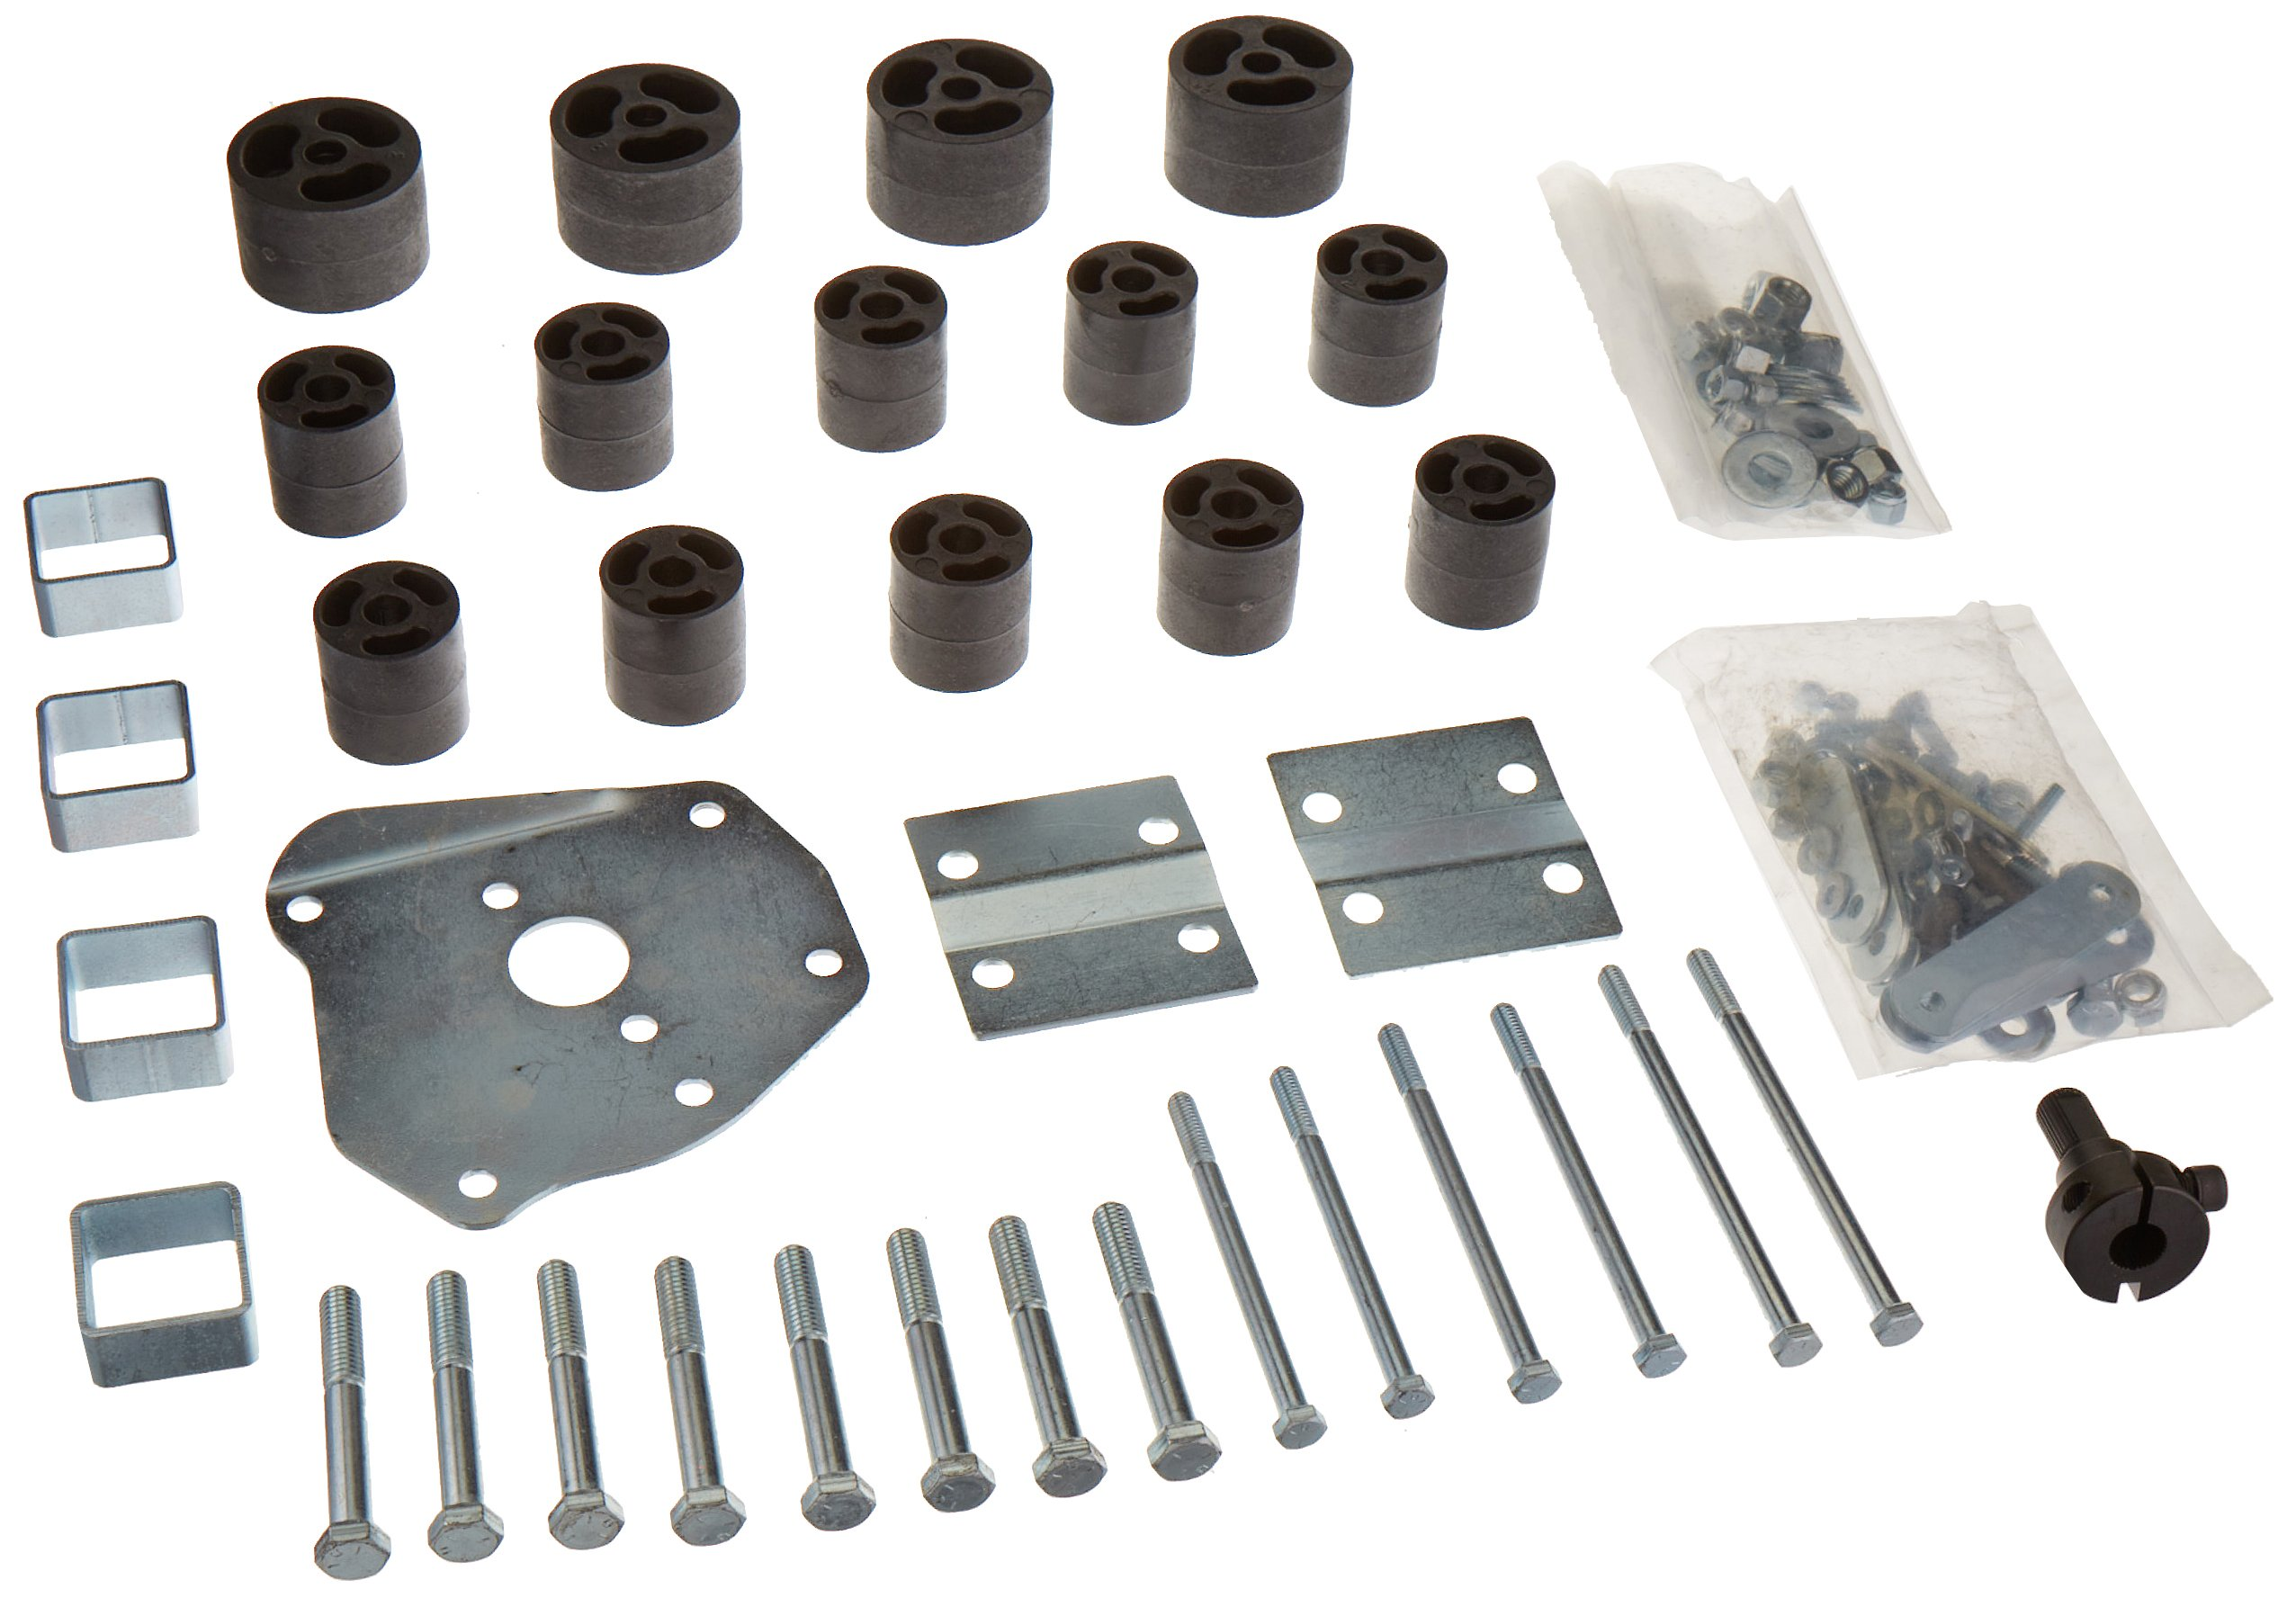 Performance Accessories, Toyota Pickup 4WD Std/Ext Cab (#9628 Req For Auto Trans) 2'' Body Lift Kit, fits 1989 to 1995, PA5502M, Made in America